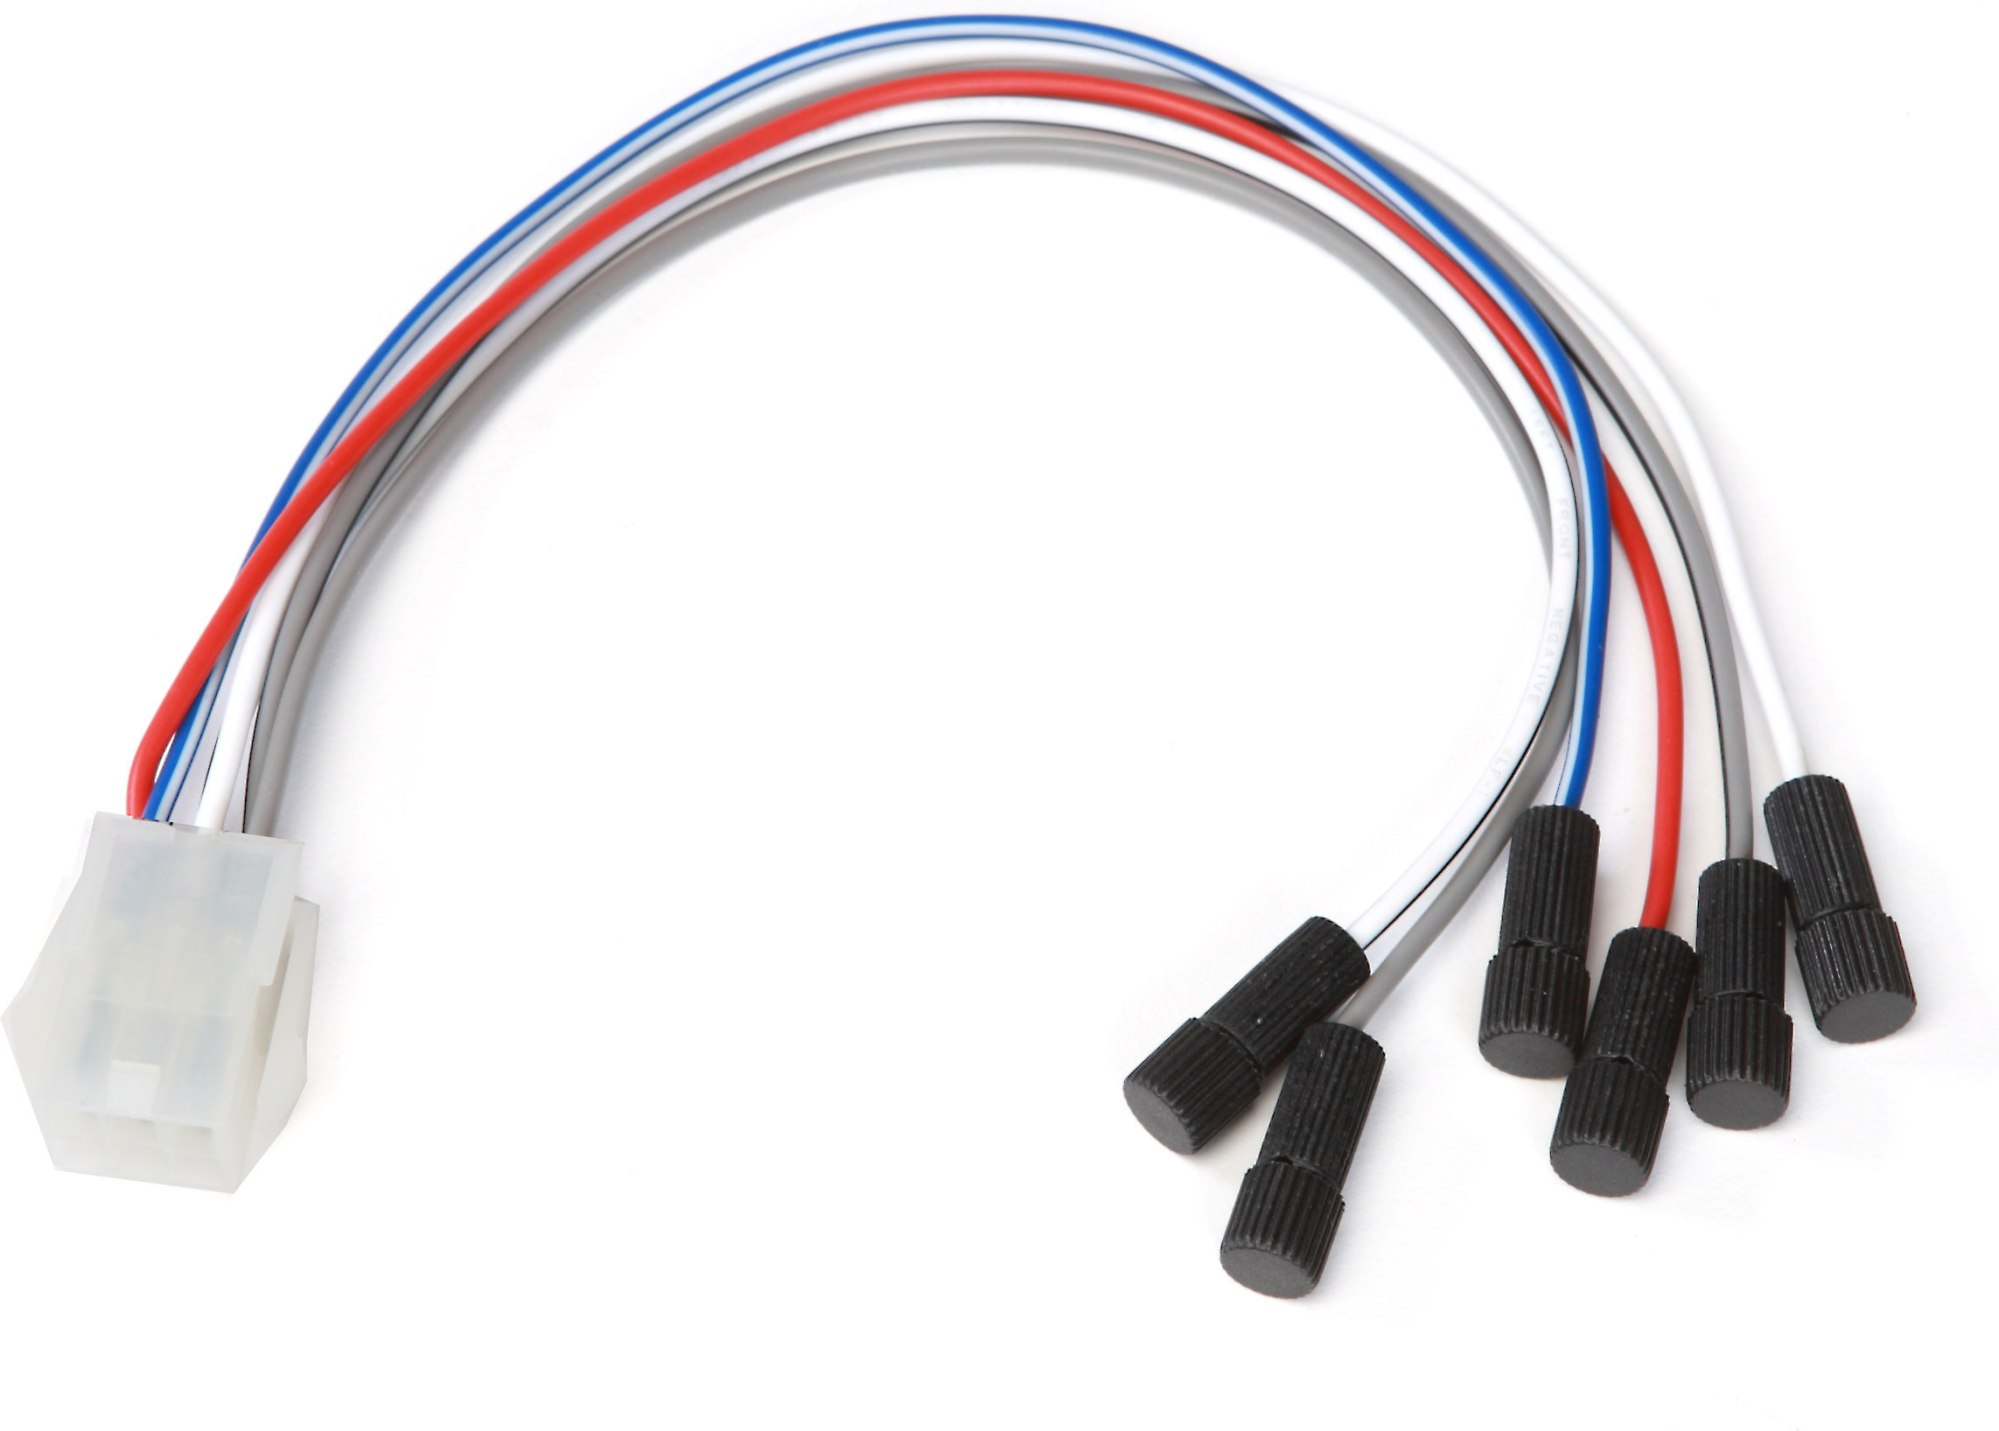 hight resolution of bazooka f a s t 9999 universal connection harness for powered bass bazooka bta850fh model wire harness